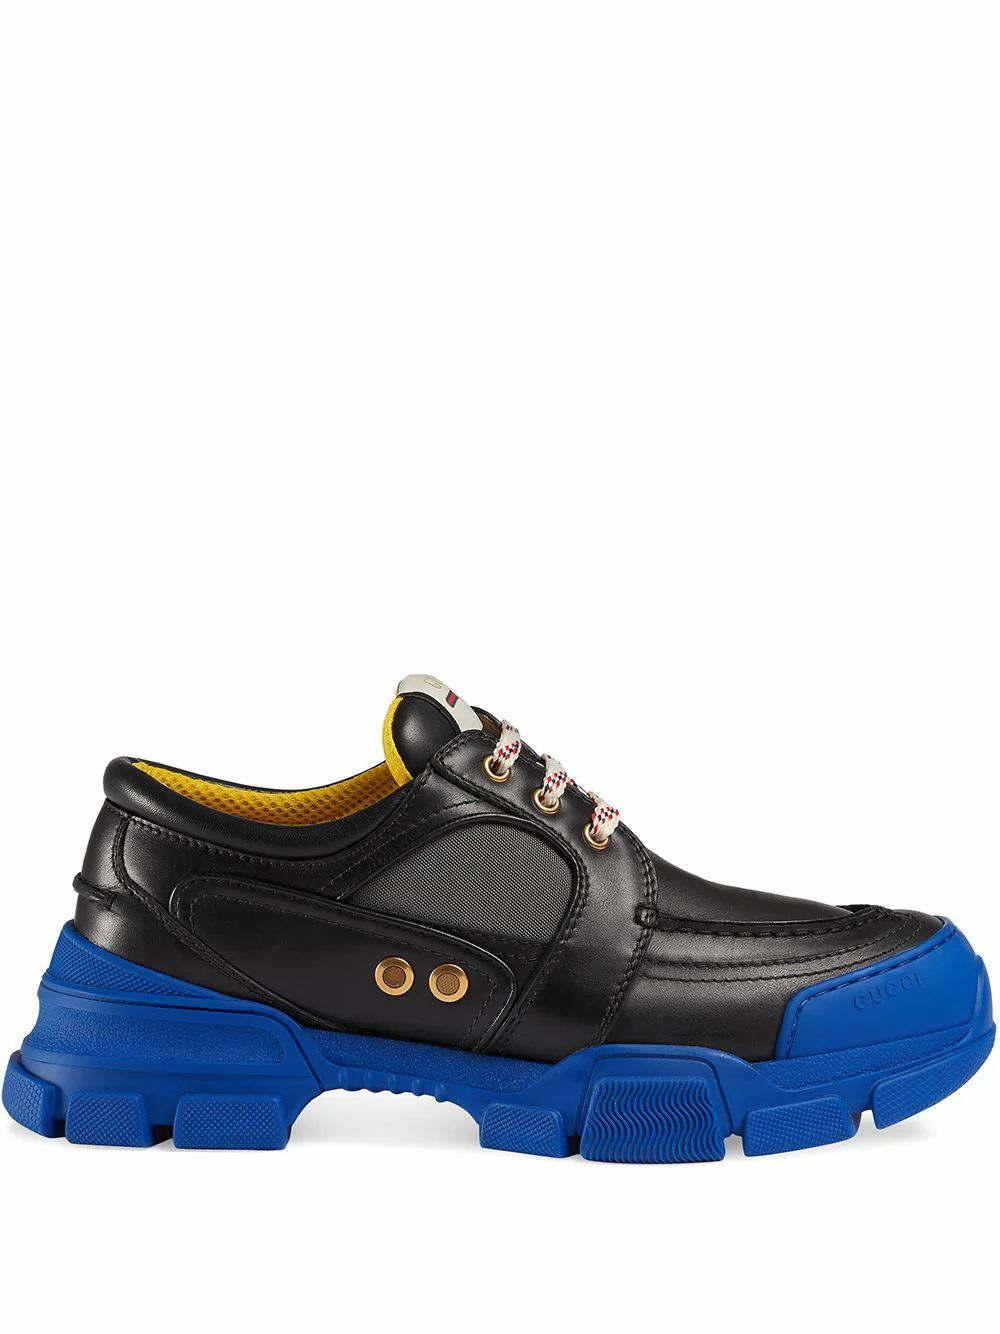 Gucci Leathers GUCCI MEN'S 5760481DZ101075 BLACK LEATHER SNEAKERS